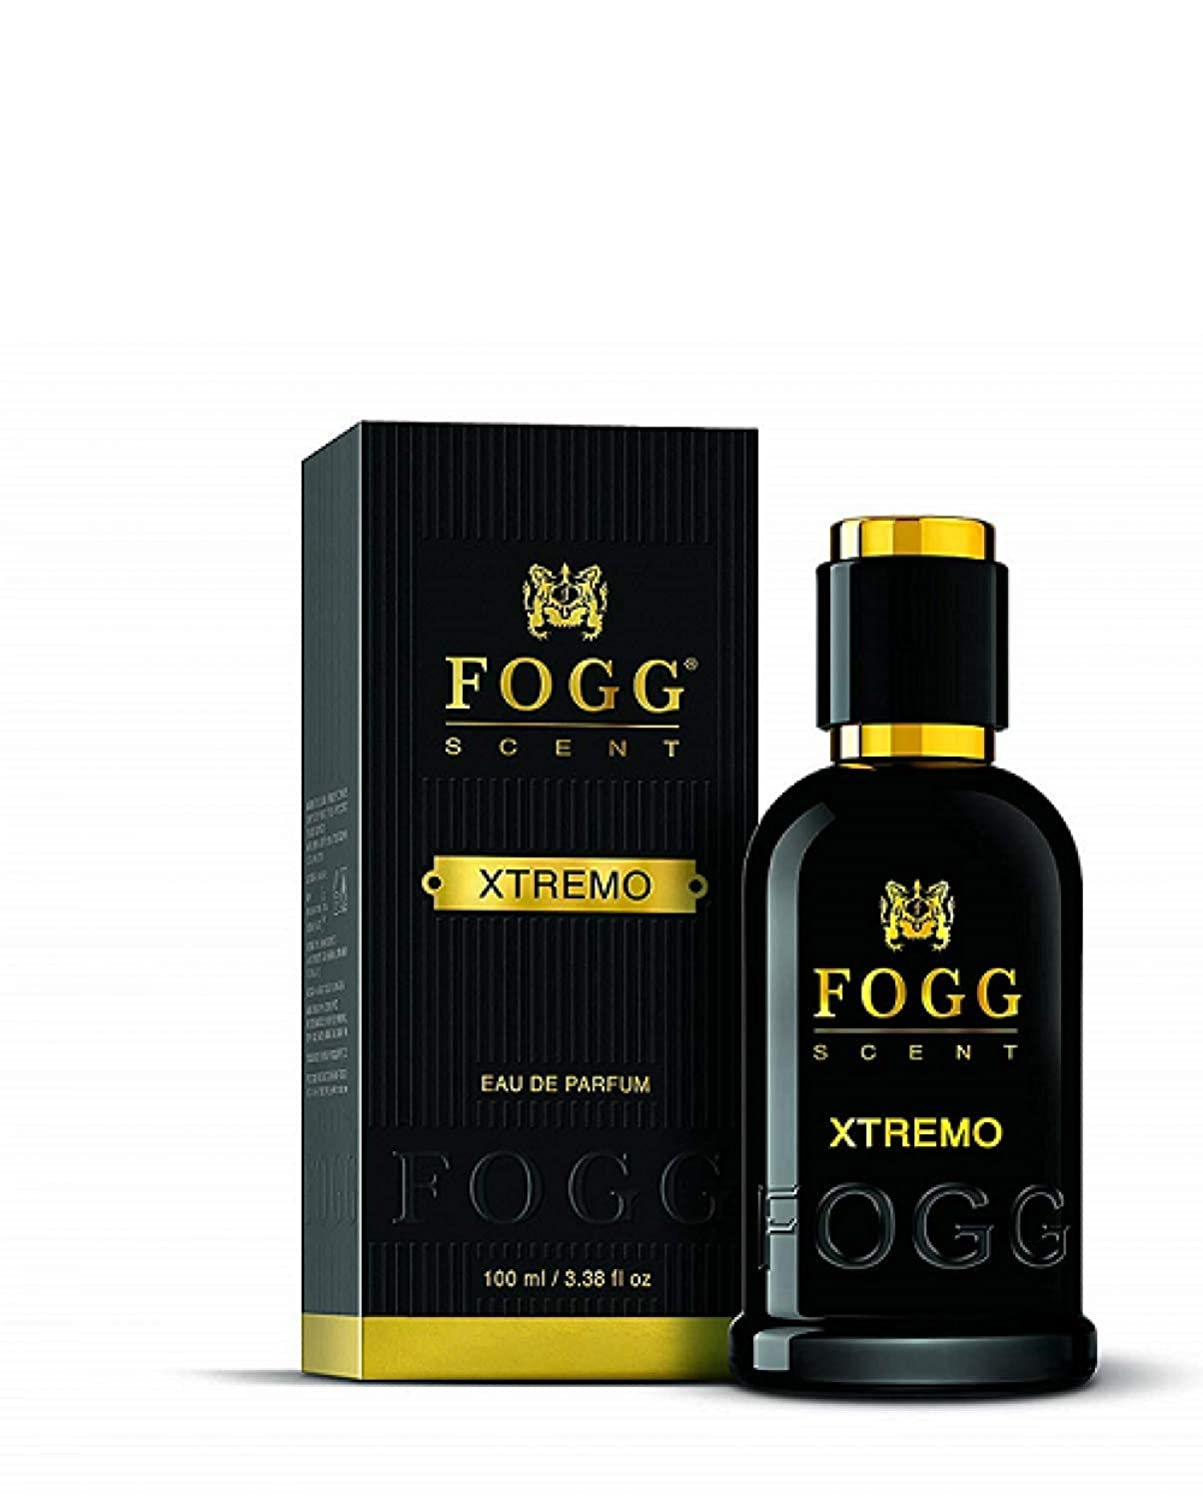 Fogg  Scent up to 45% off @ Amazon